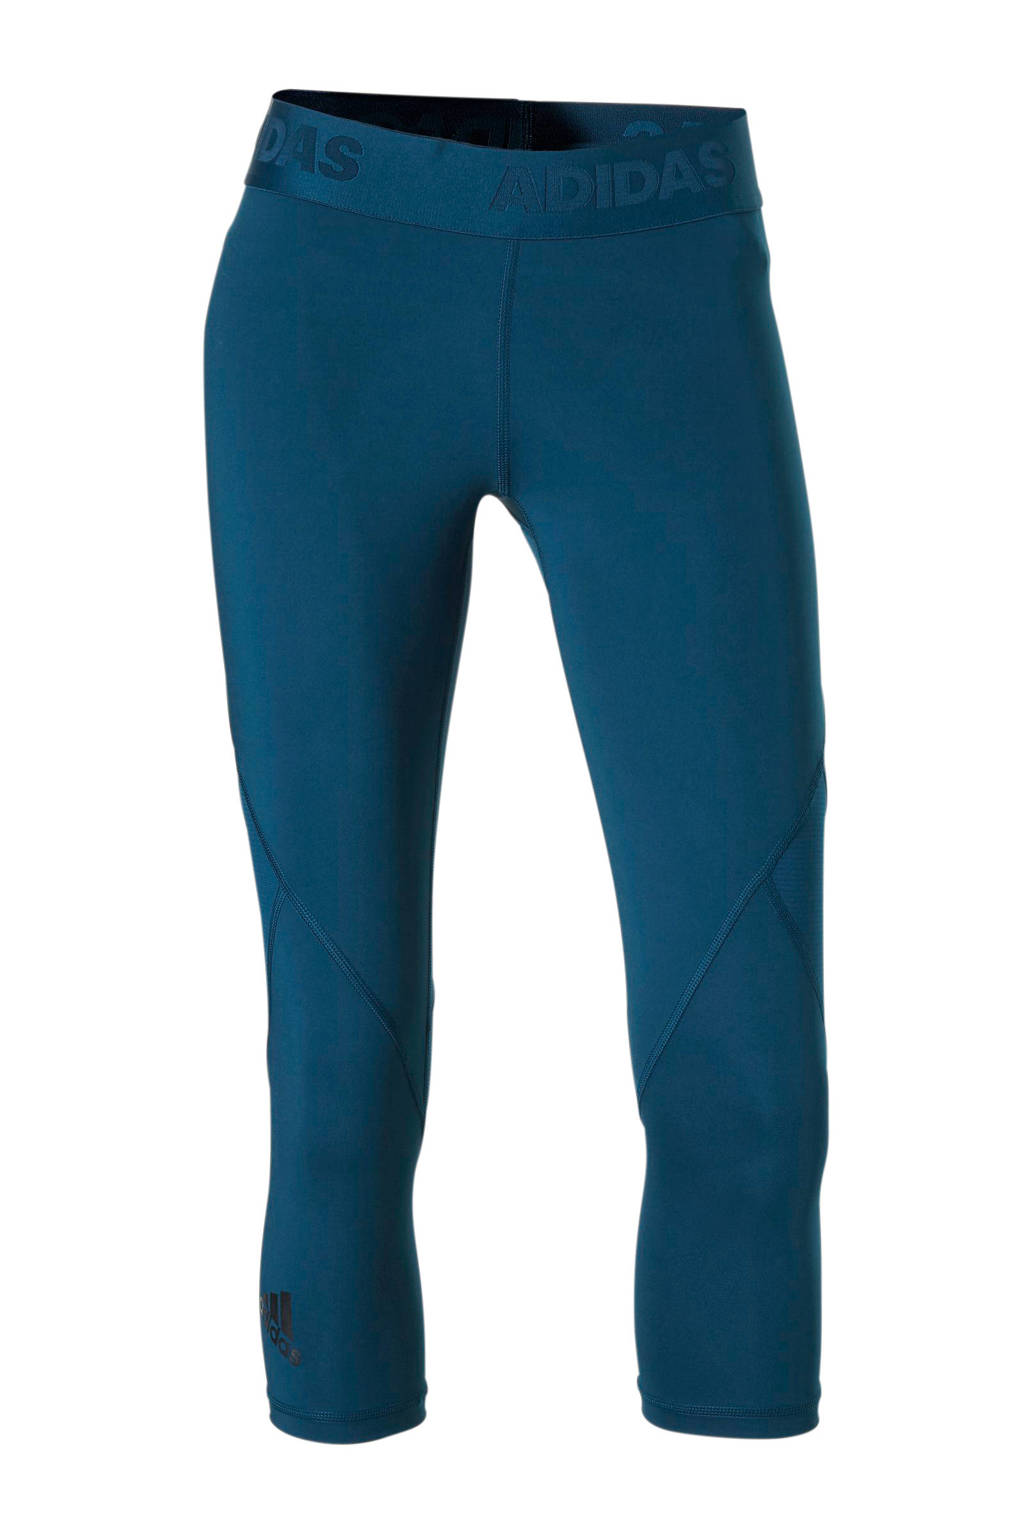 Capri Sportlegging.Adidas Performance Capri Sportlegging Petrol Wehkamp